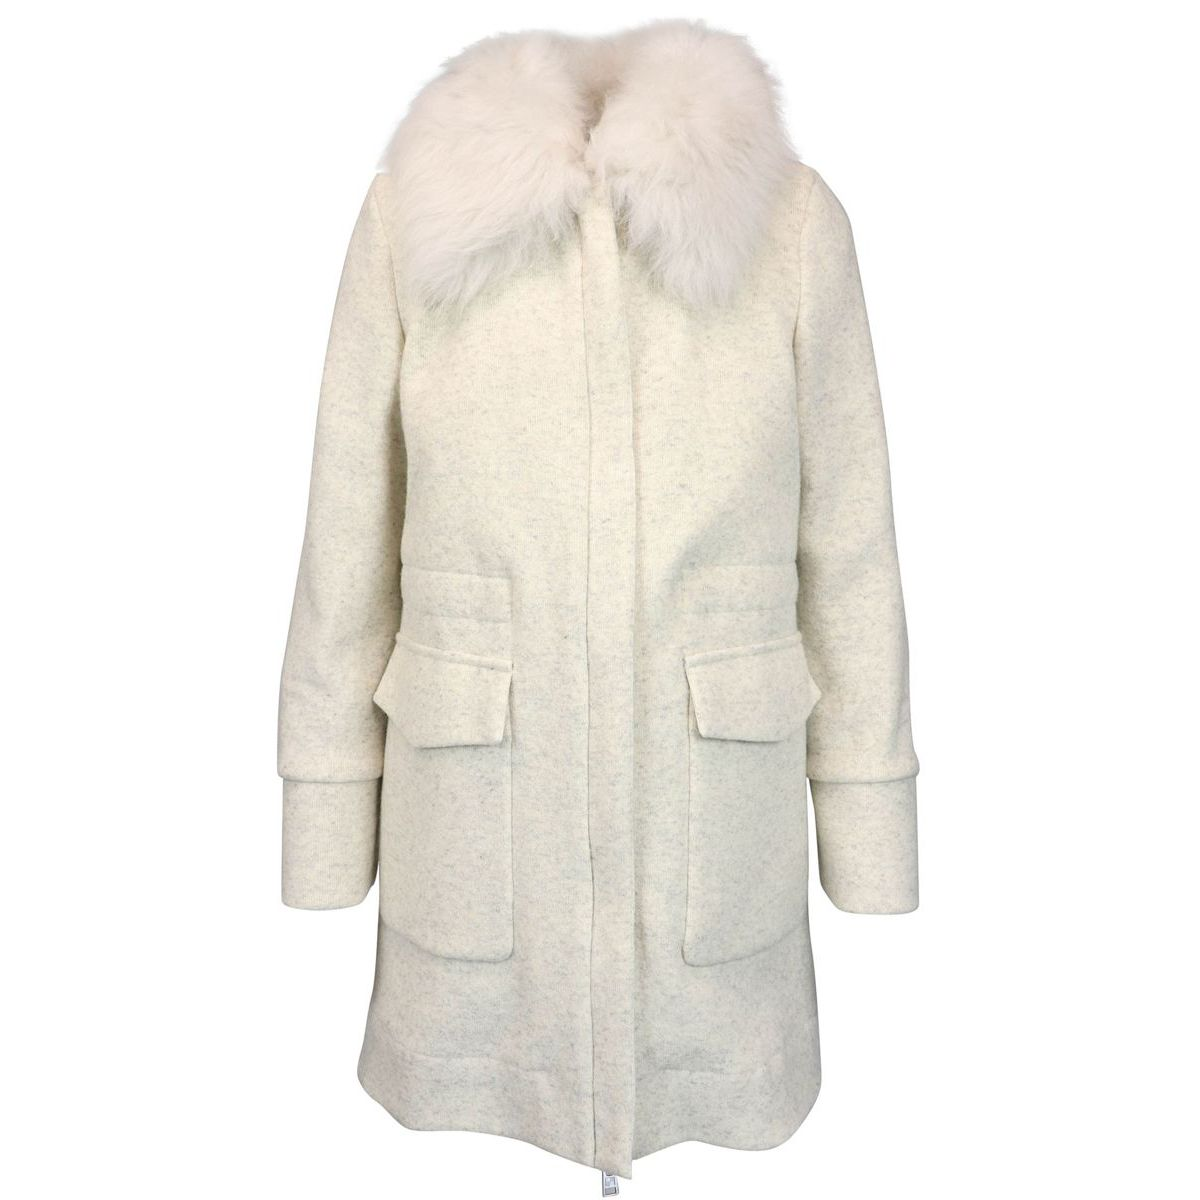 WOOL COTTON COAT Cream Woolrich